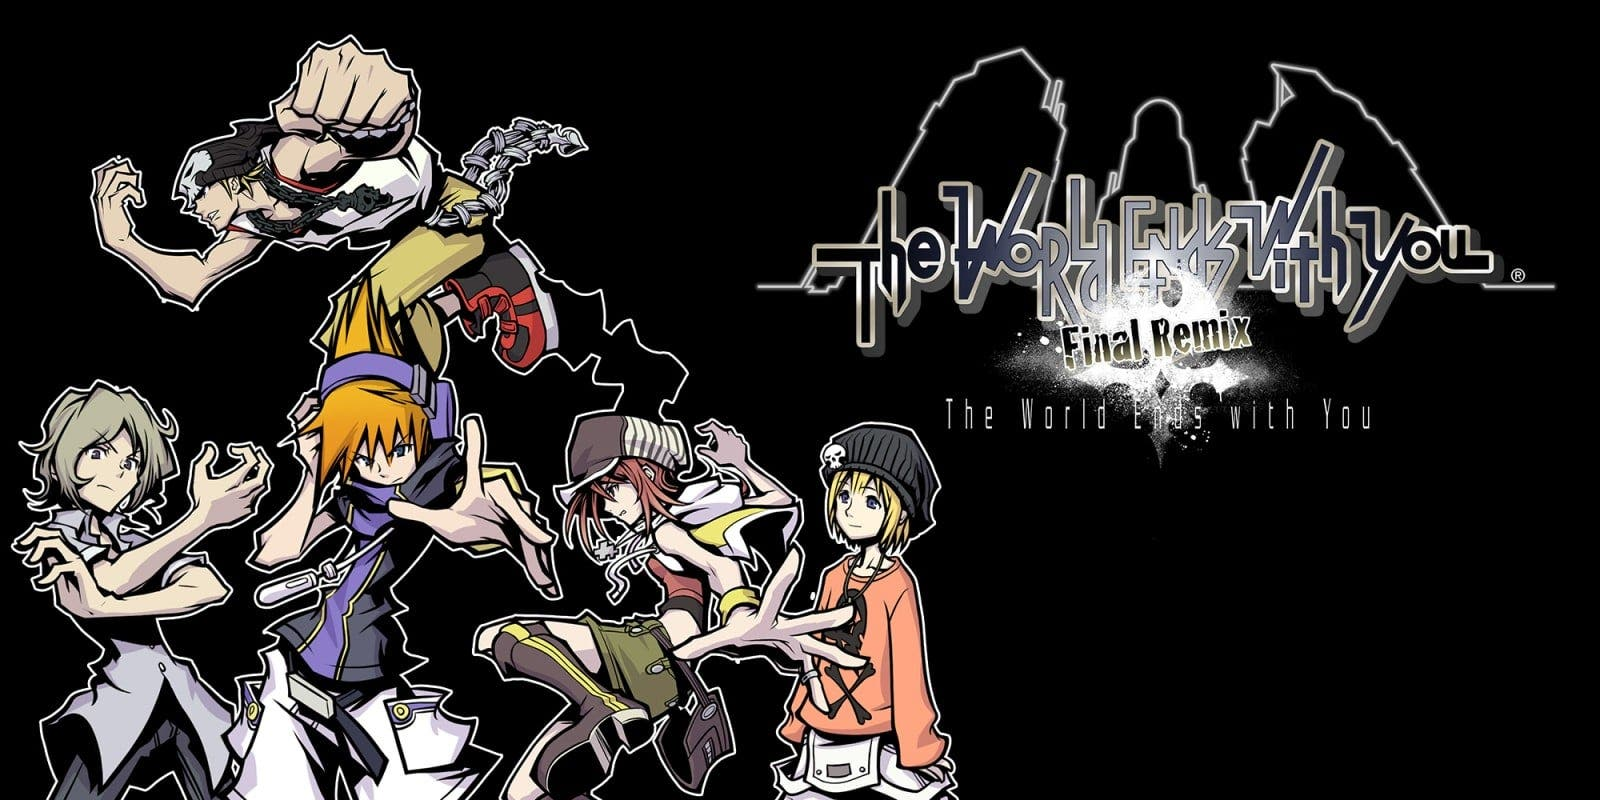 La versión traducida al chino de The World Ends With You: Final Remix parece estar incompleta